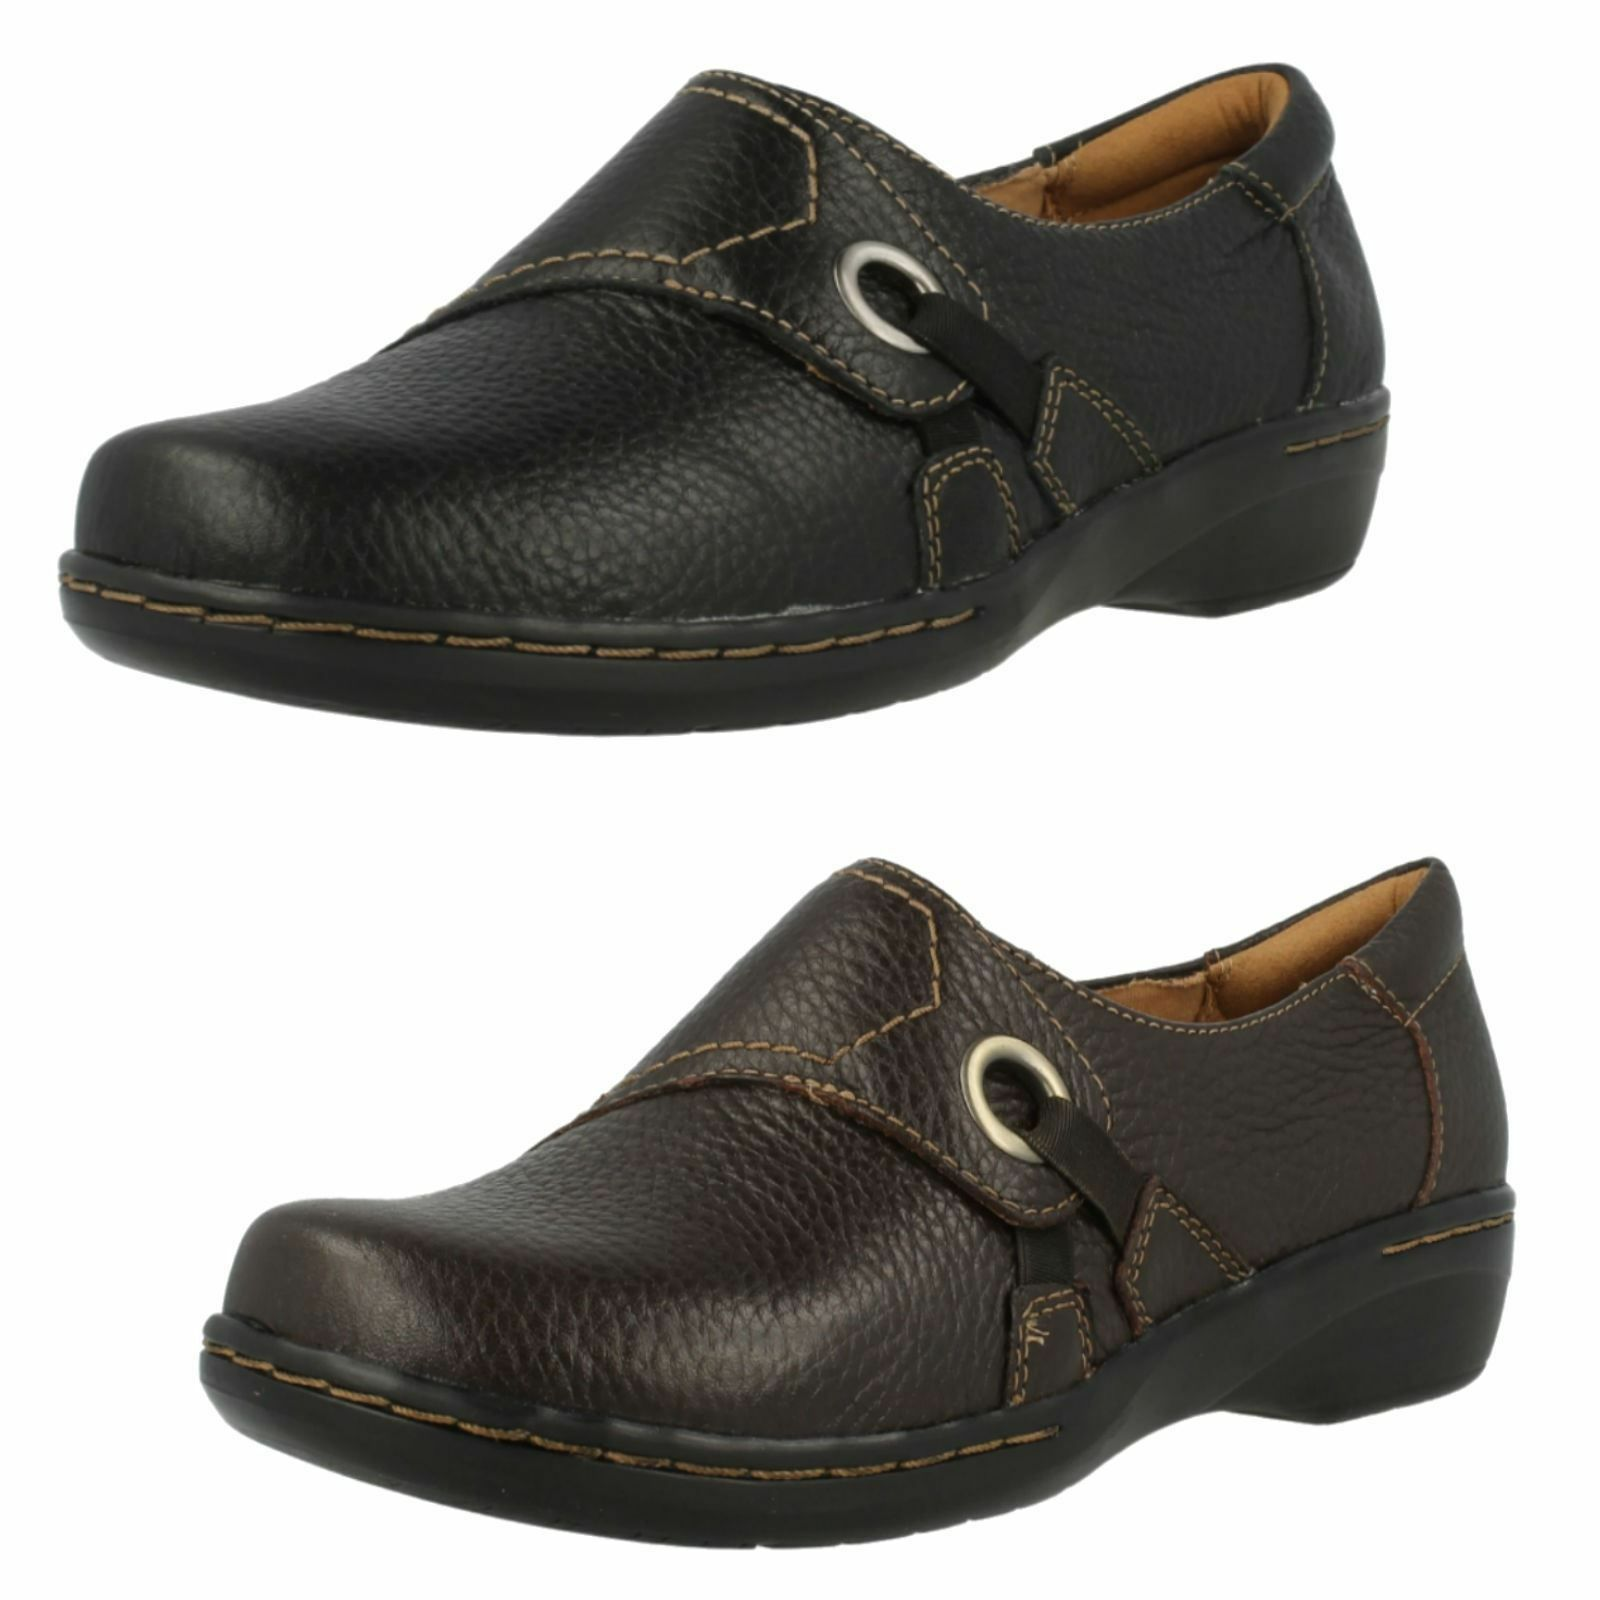 Ladies Leather Clarks 'Evianna Boa' In Black&Brown; D Fitting - Great Price!